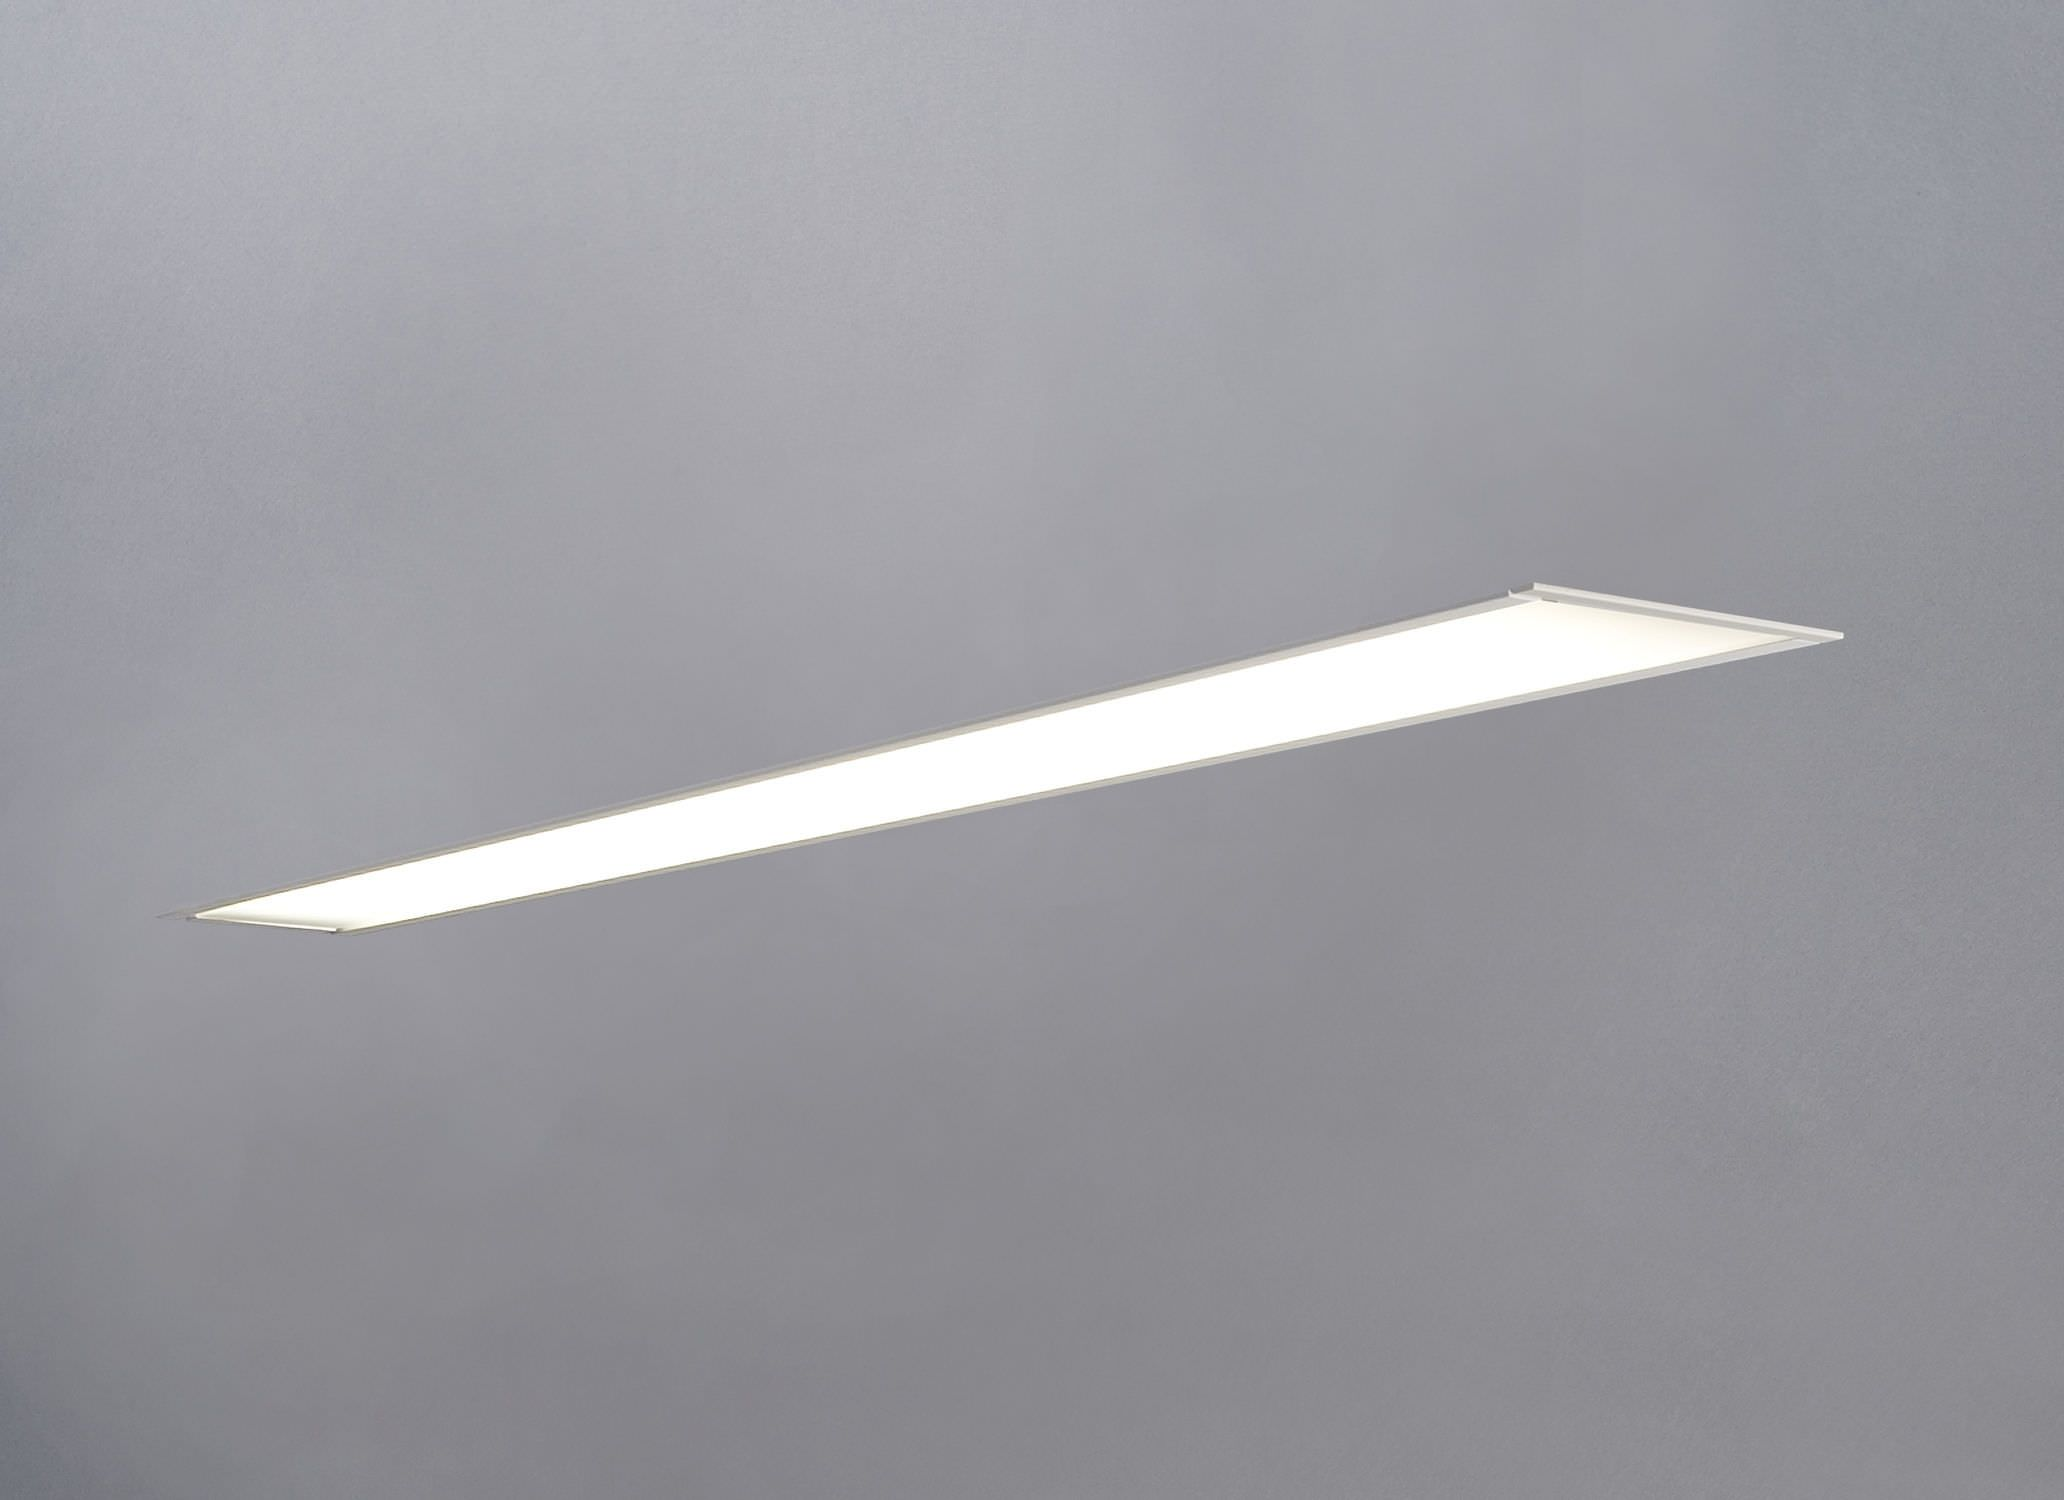 Dimmable recessed fluorescent light fixtures httpdeai rankfo dimmable recessed fluorescent light fixtures arubaitofo Image collections